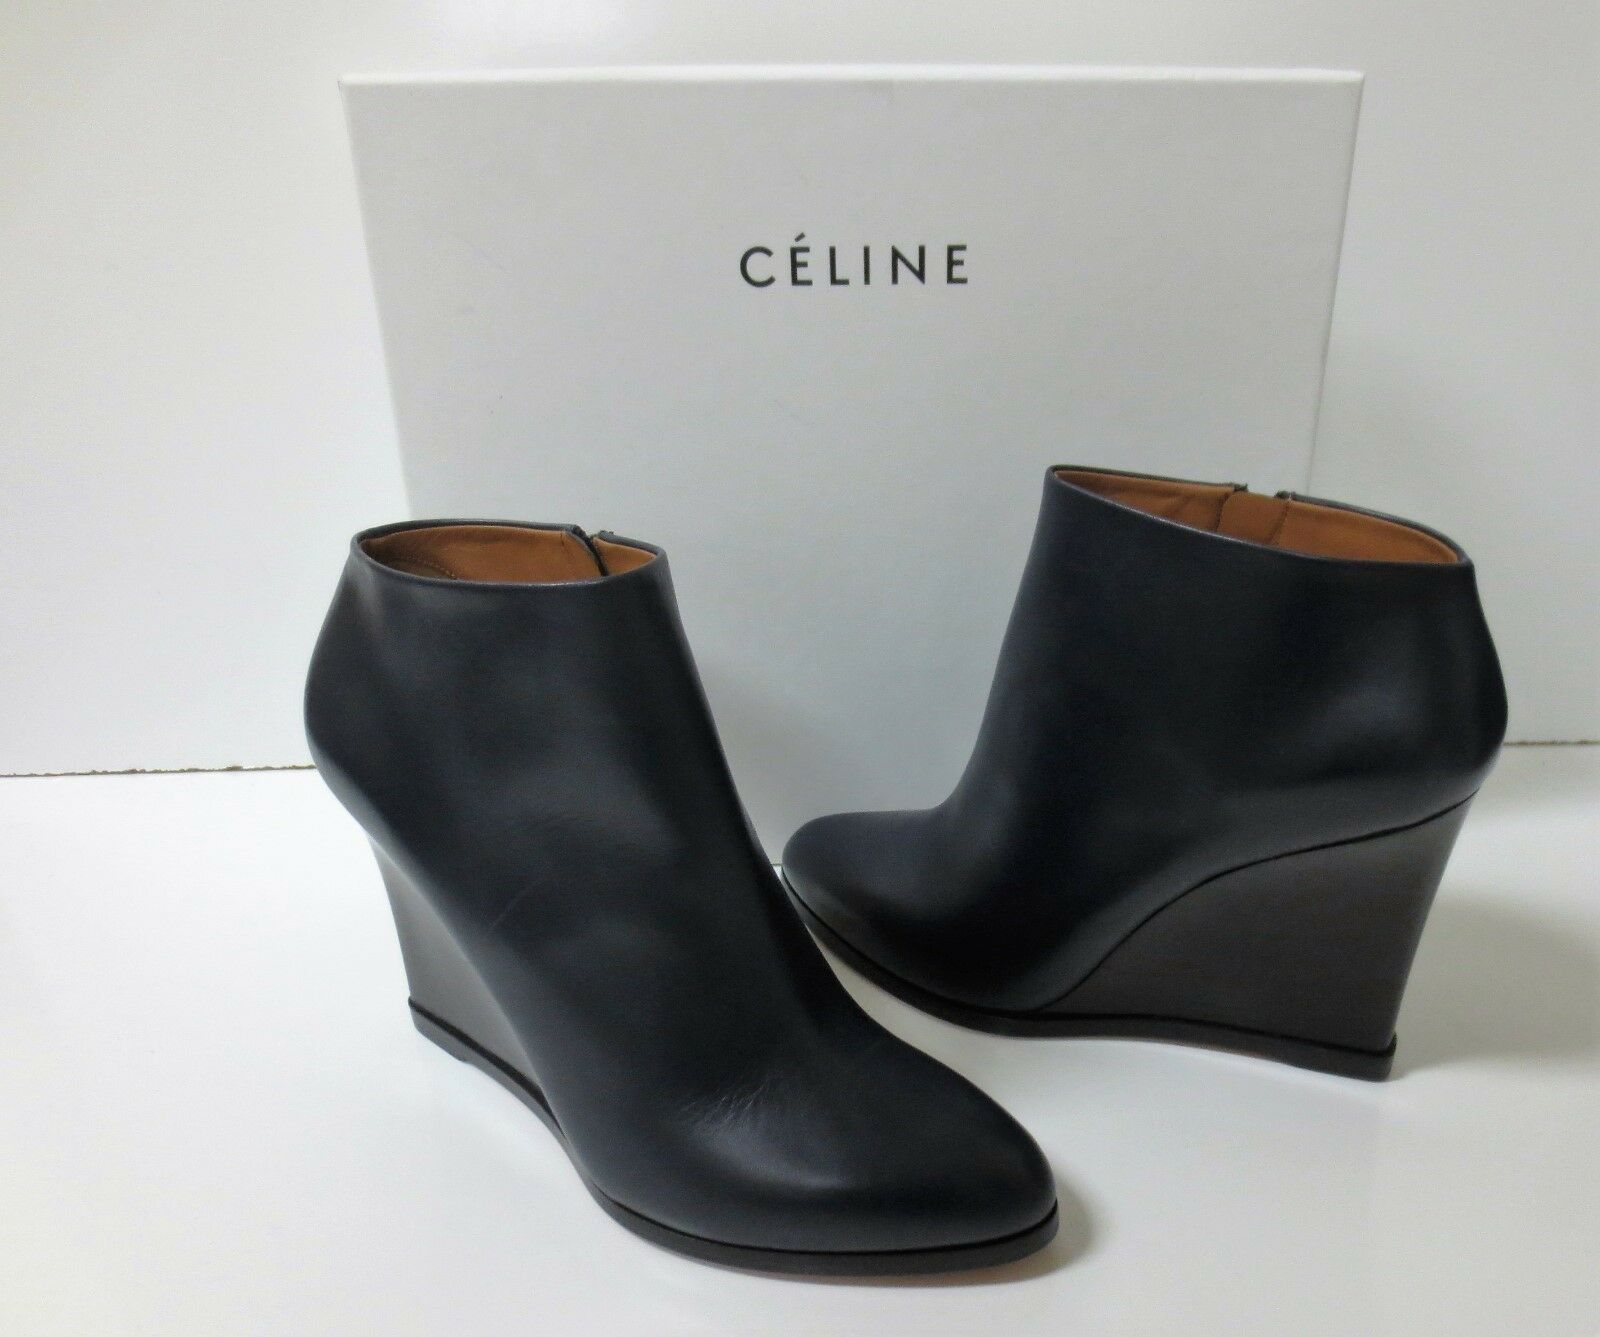 CELINE Navy Leather and Black Wedge Ankle Boots Shoes Sz 38.5 NEW IN BOX $1100